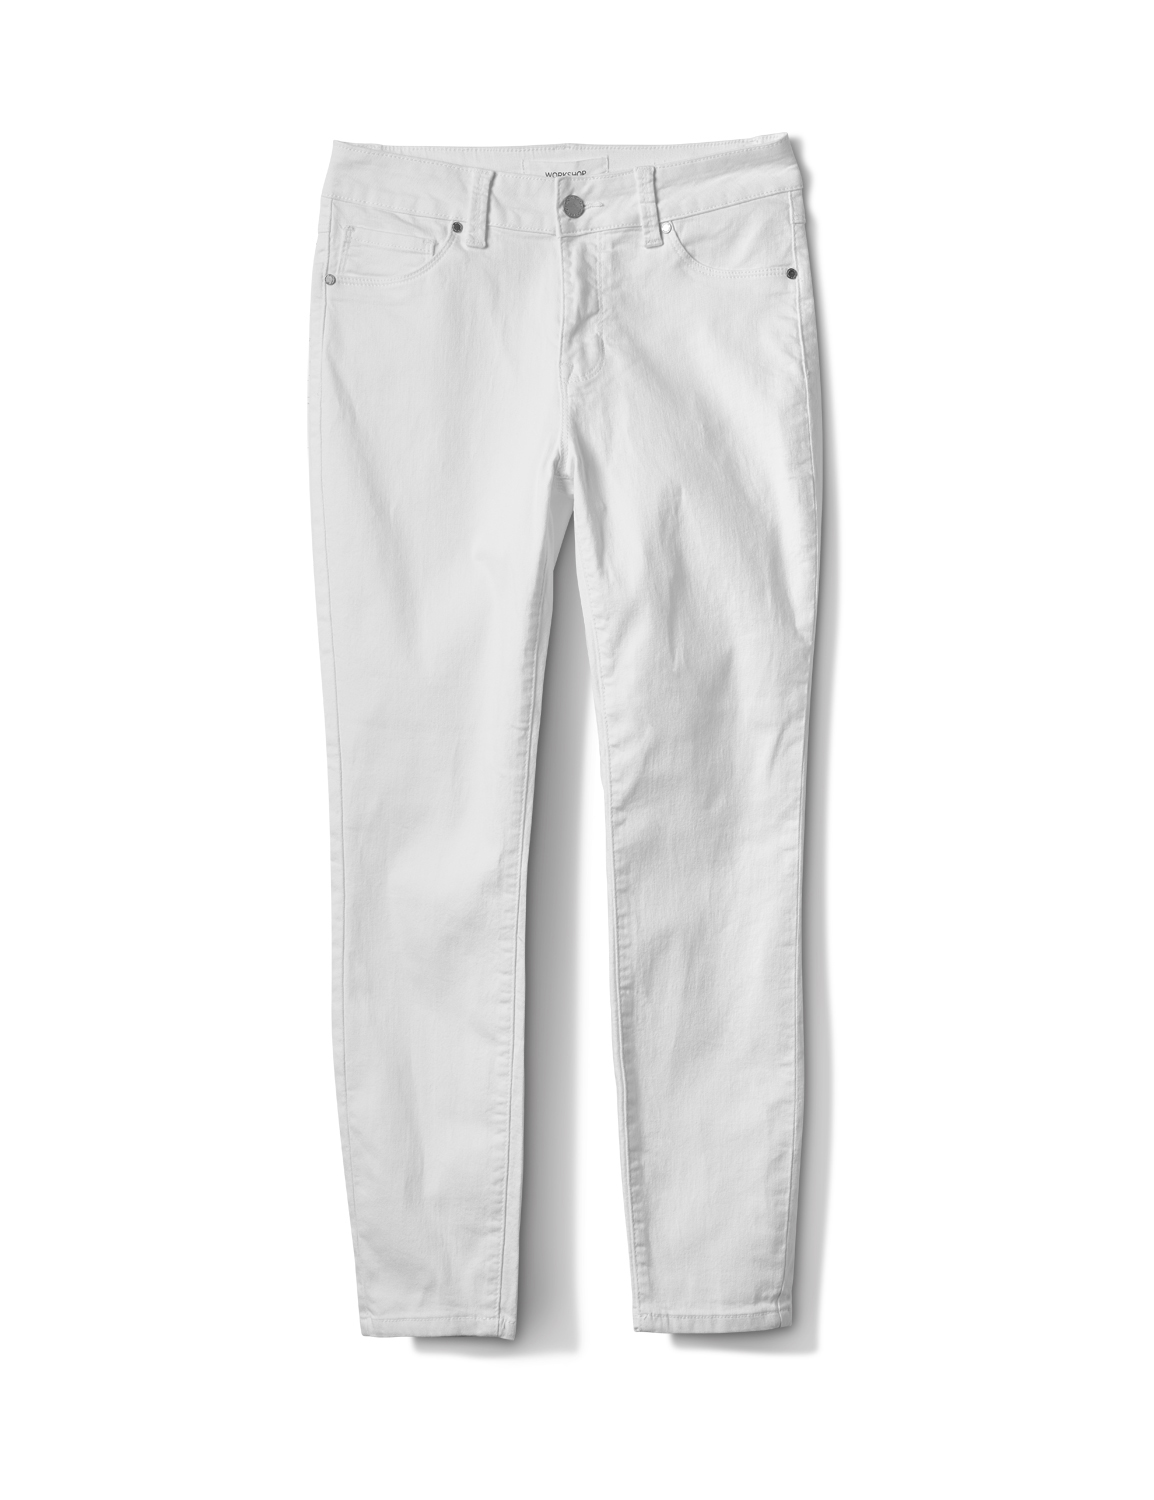 5 Pocket Skinny Ankle Jean -White - Front